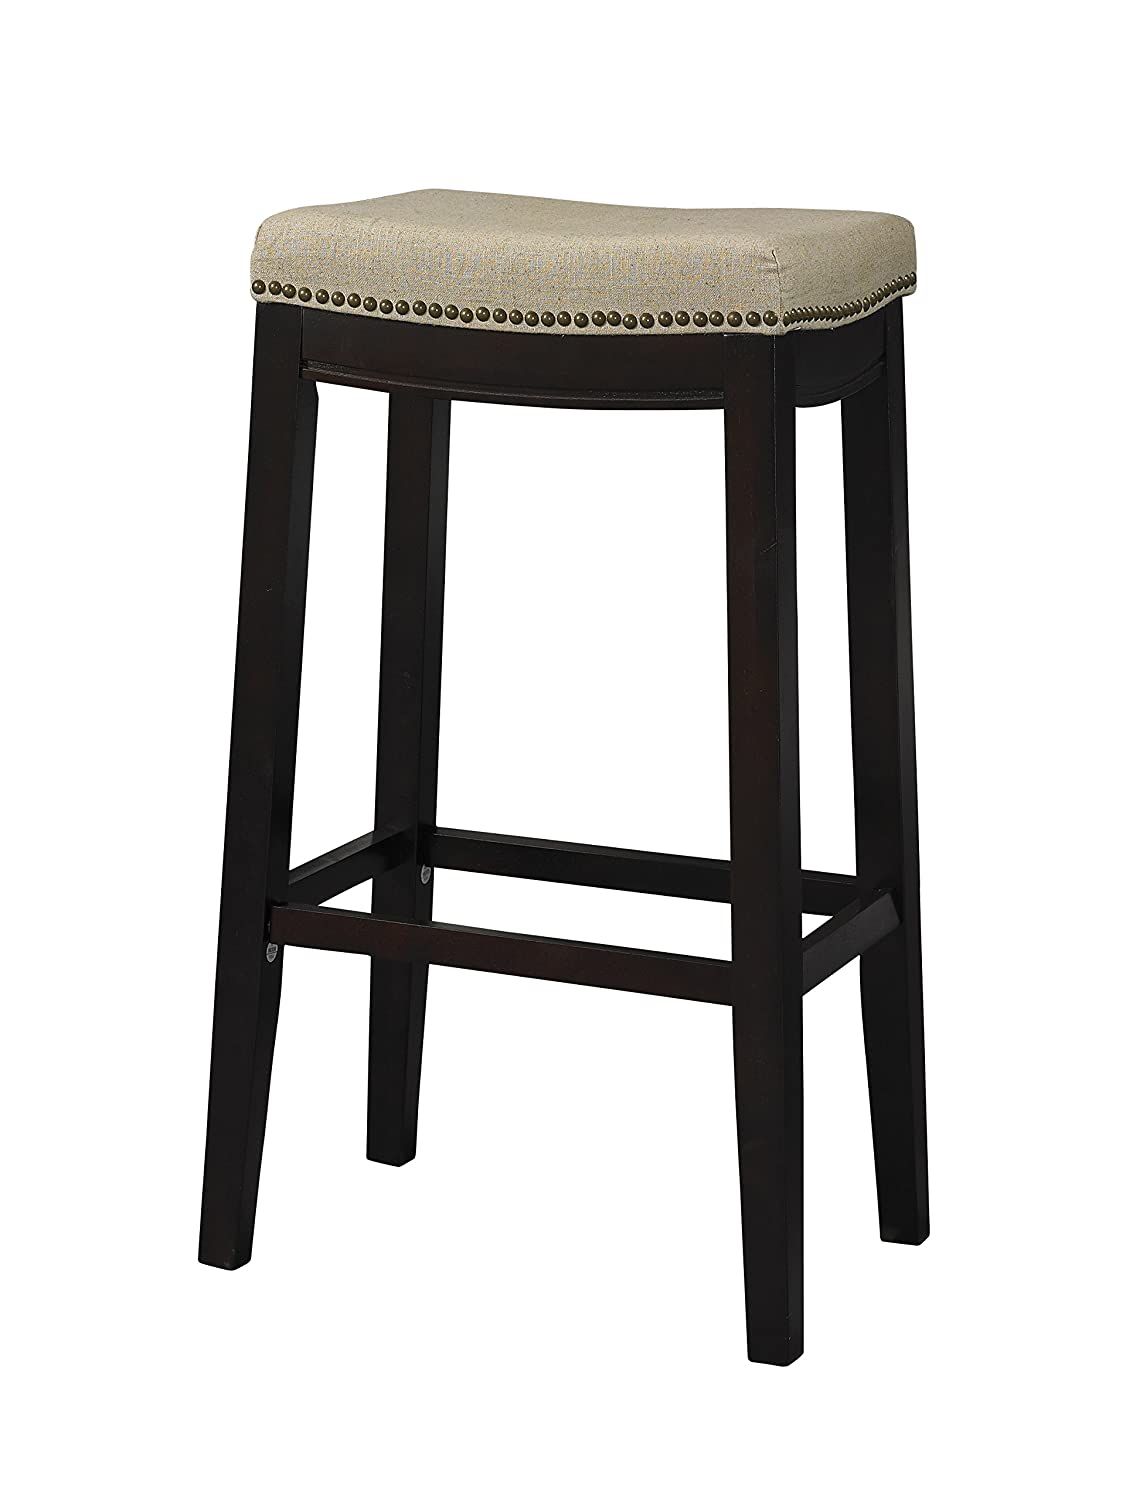 Linon 98326WAL-01-KD Allure Stool Fabric Top Stool, 30-Inch Linon Home